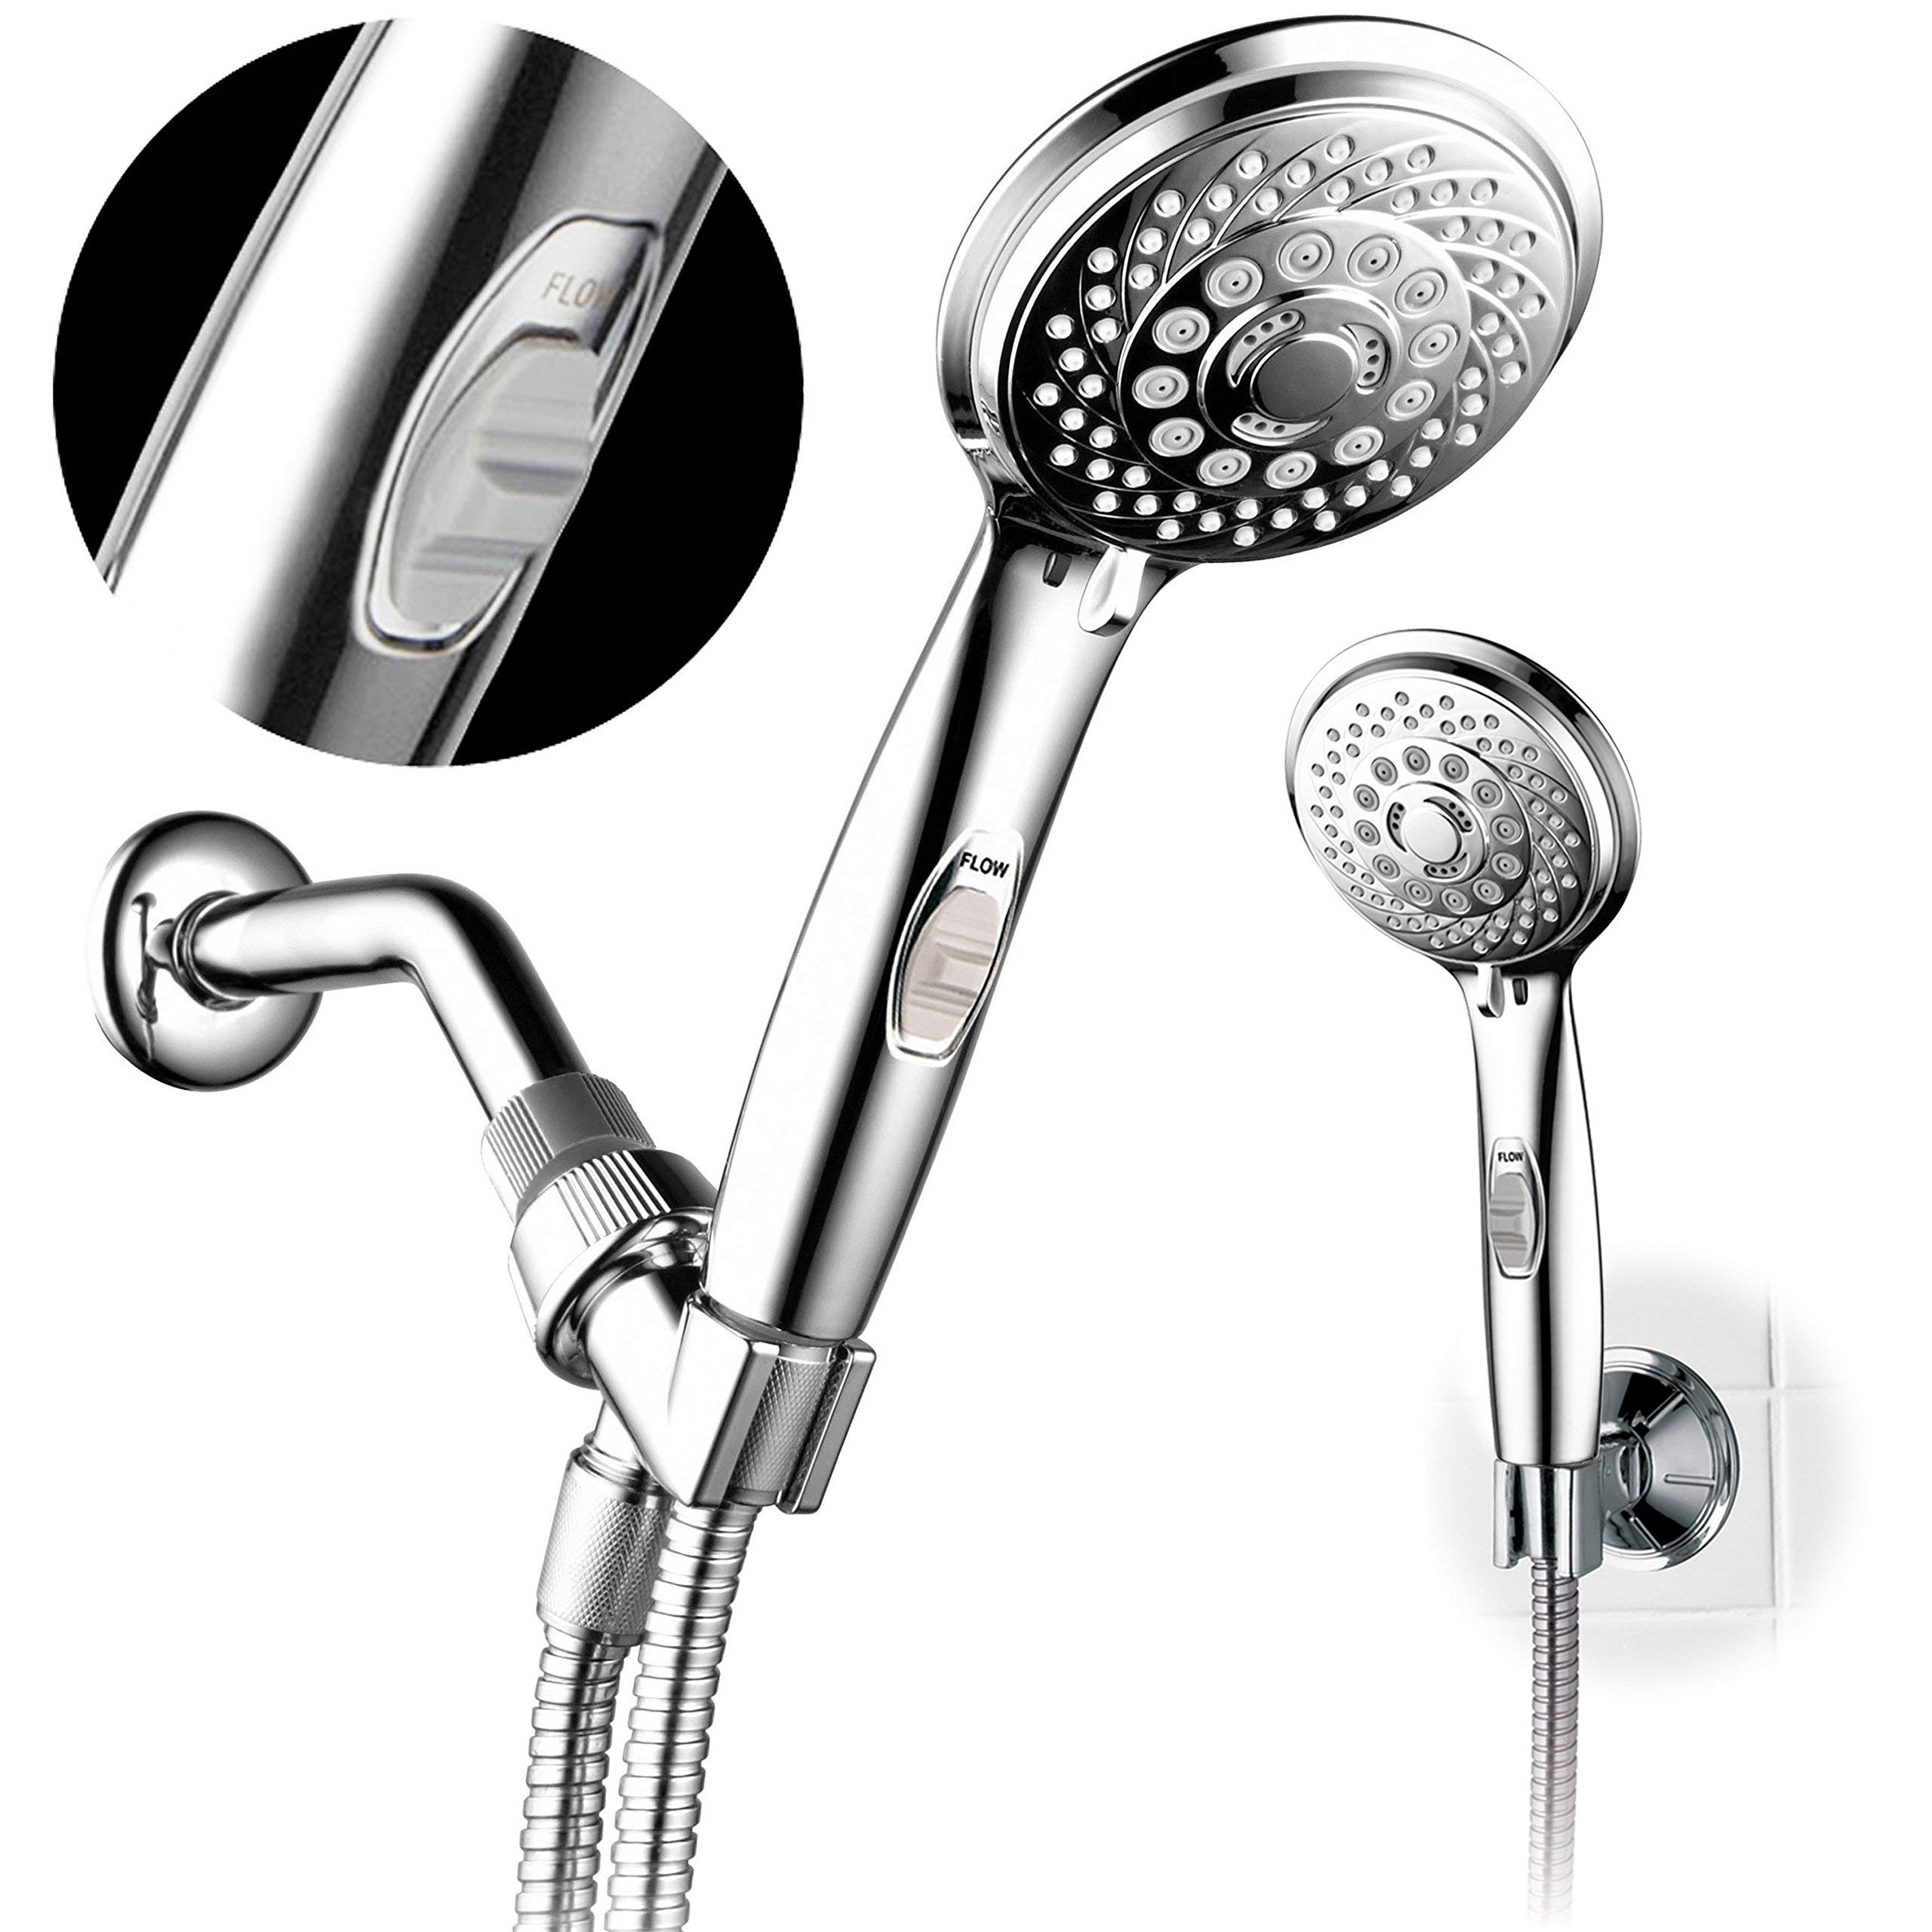 HotelSpa 7-setting AquaCare Series Spiral Handheld Shower Head Luxury  Convenience Package with Pause Switch